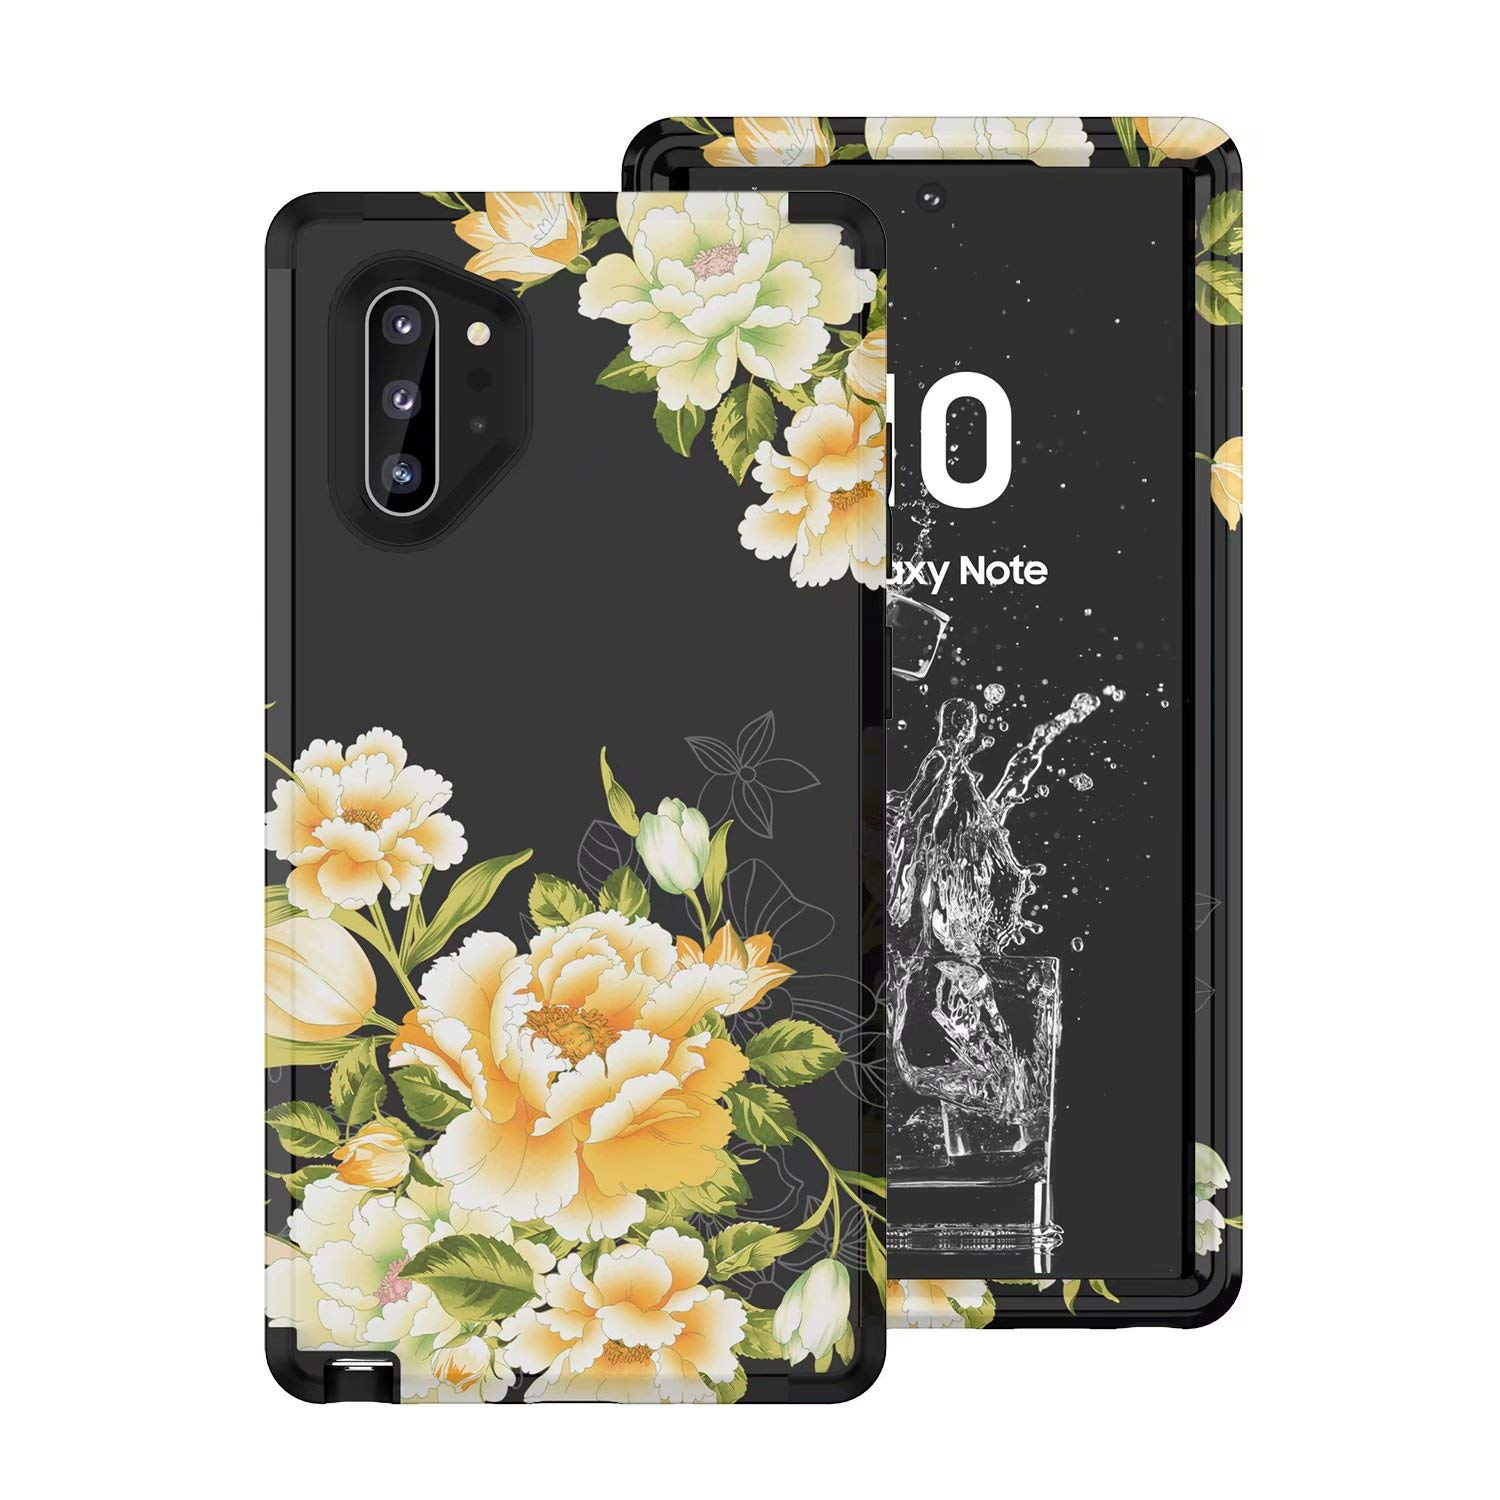 Tznzxm Galaxy Note 10 Plus Case, Slim Floral 3 in 1 Hybrid Hard PC Soft Rubber Heavy Duty Sturdy Armor Shockproof Defender Non-Slip Protective Back Case for Samsung Galaxy Note 10+ Plus/Pro/5G Black by Tznzxm